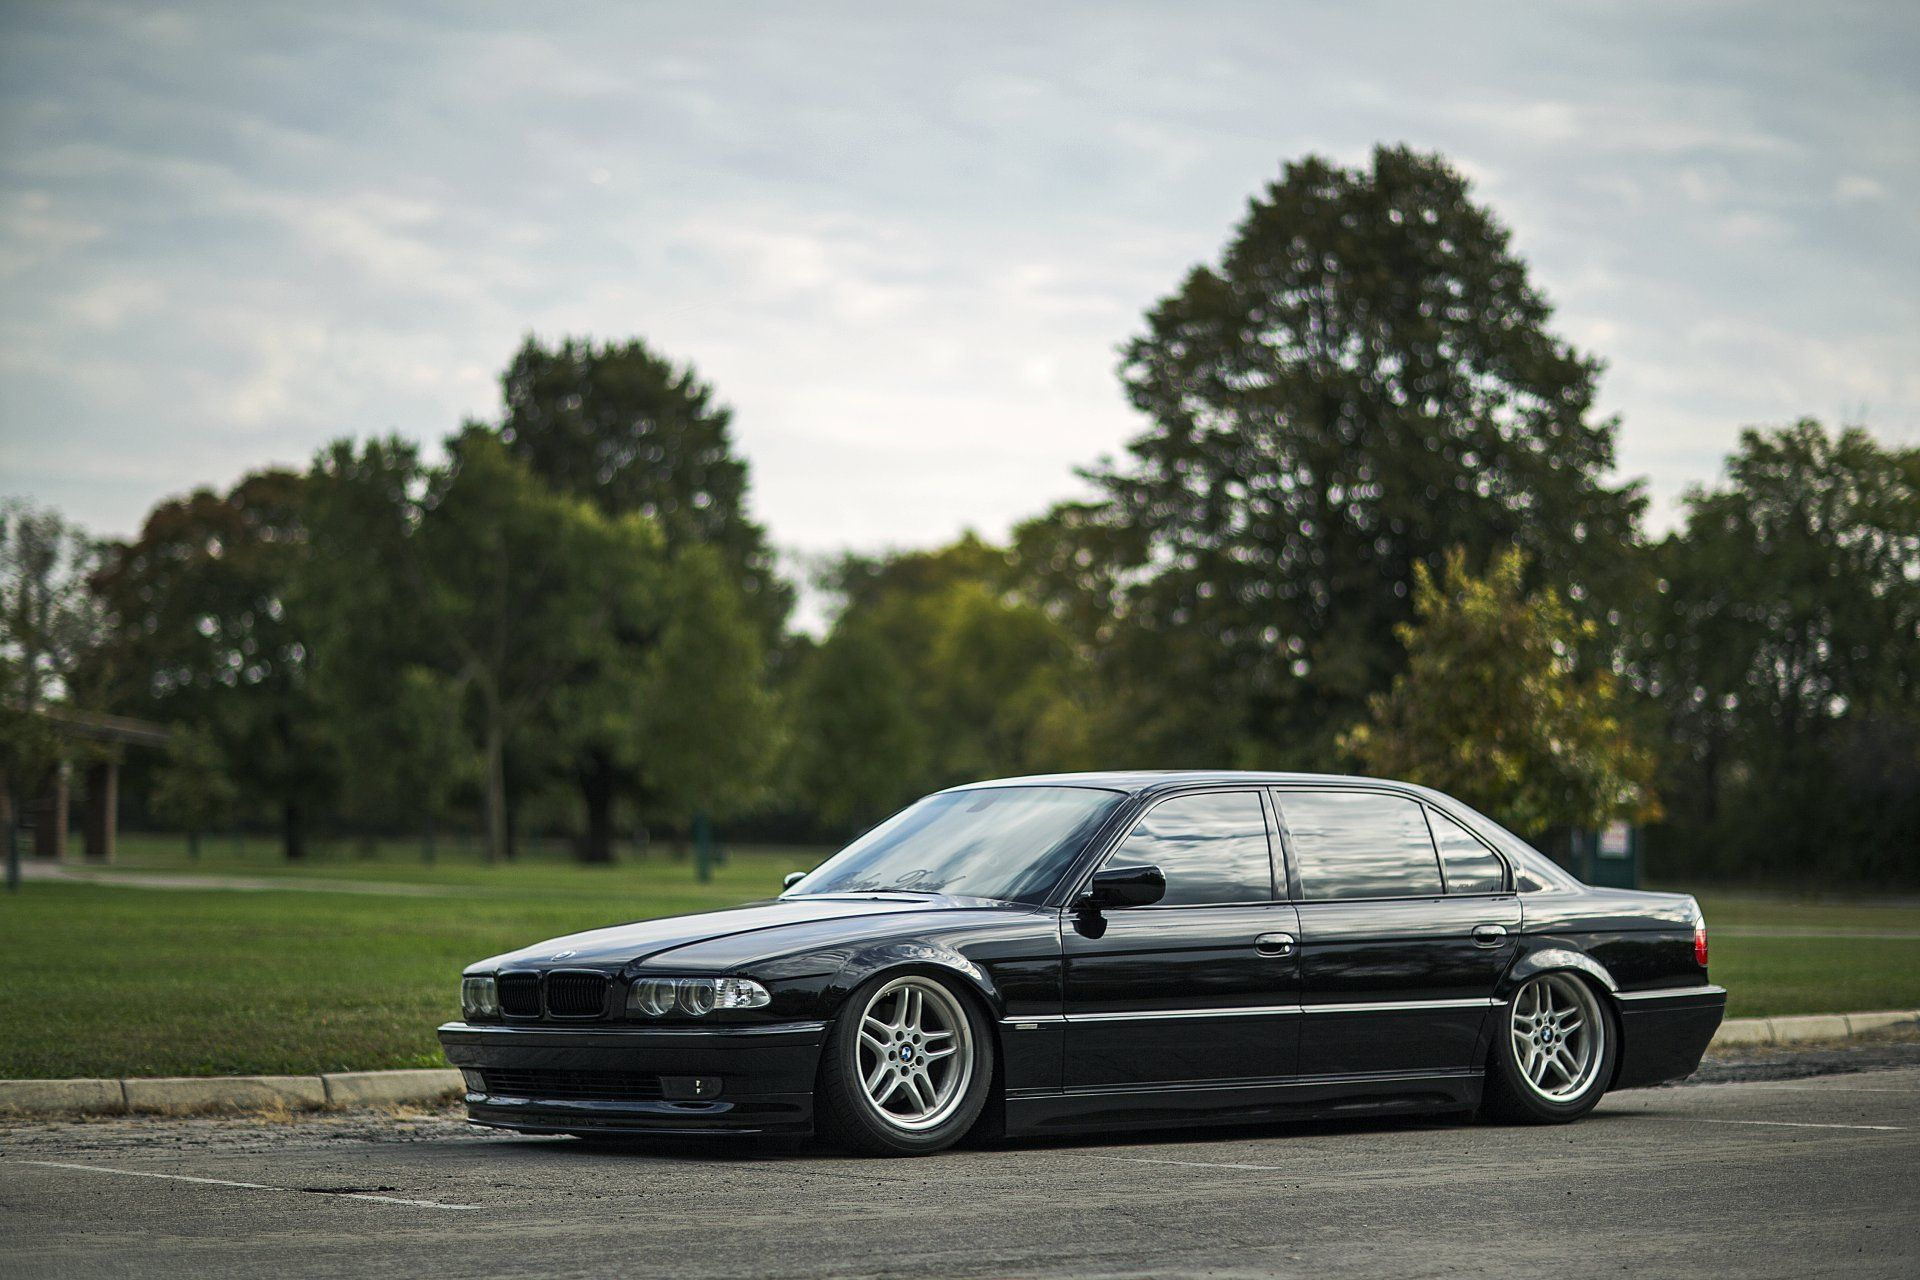 Best 40 E38 Wallpaper On Hipwallpaper E38 Wallpaper Bmw E38 7 Series Wallpaper And E38 1920x1200 Wallpaper